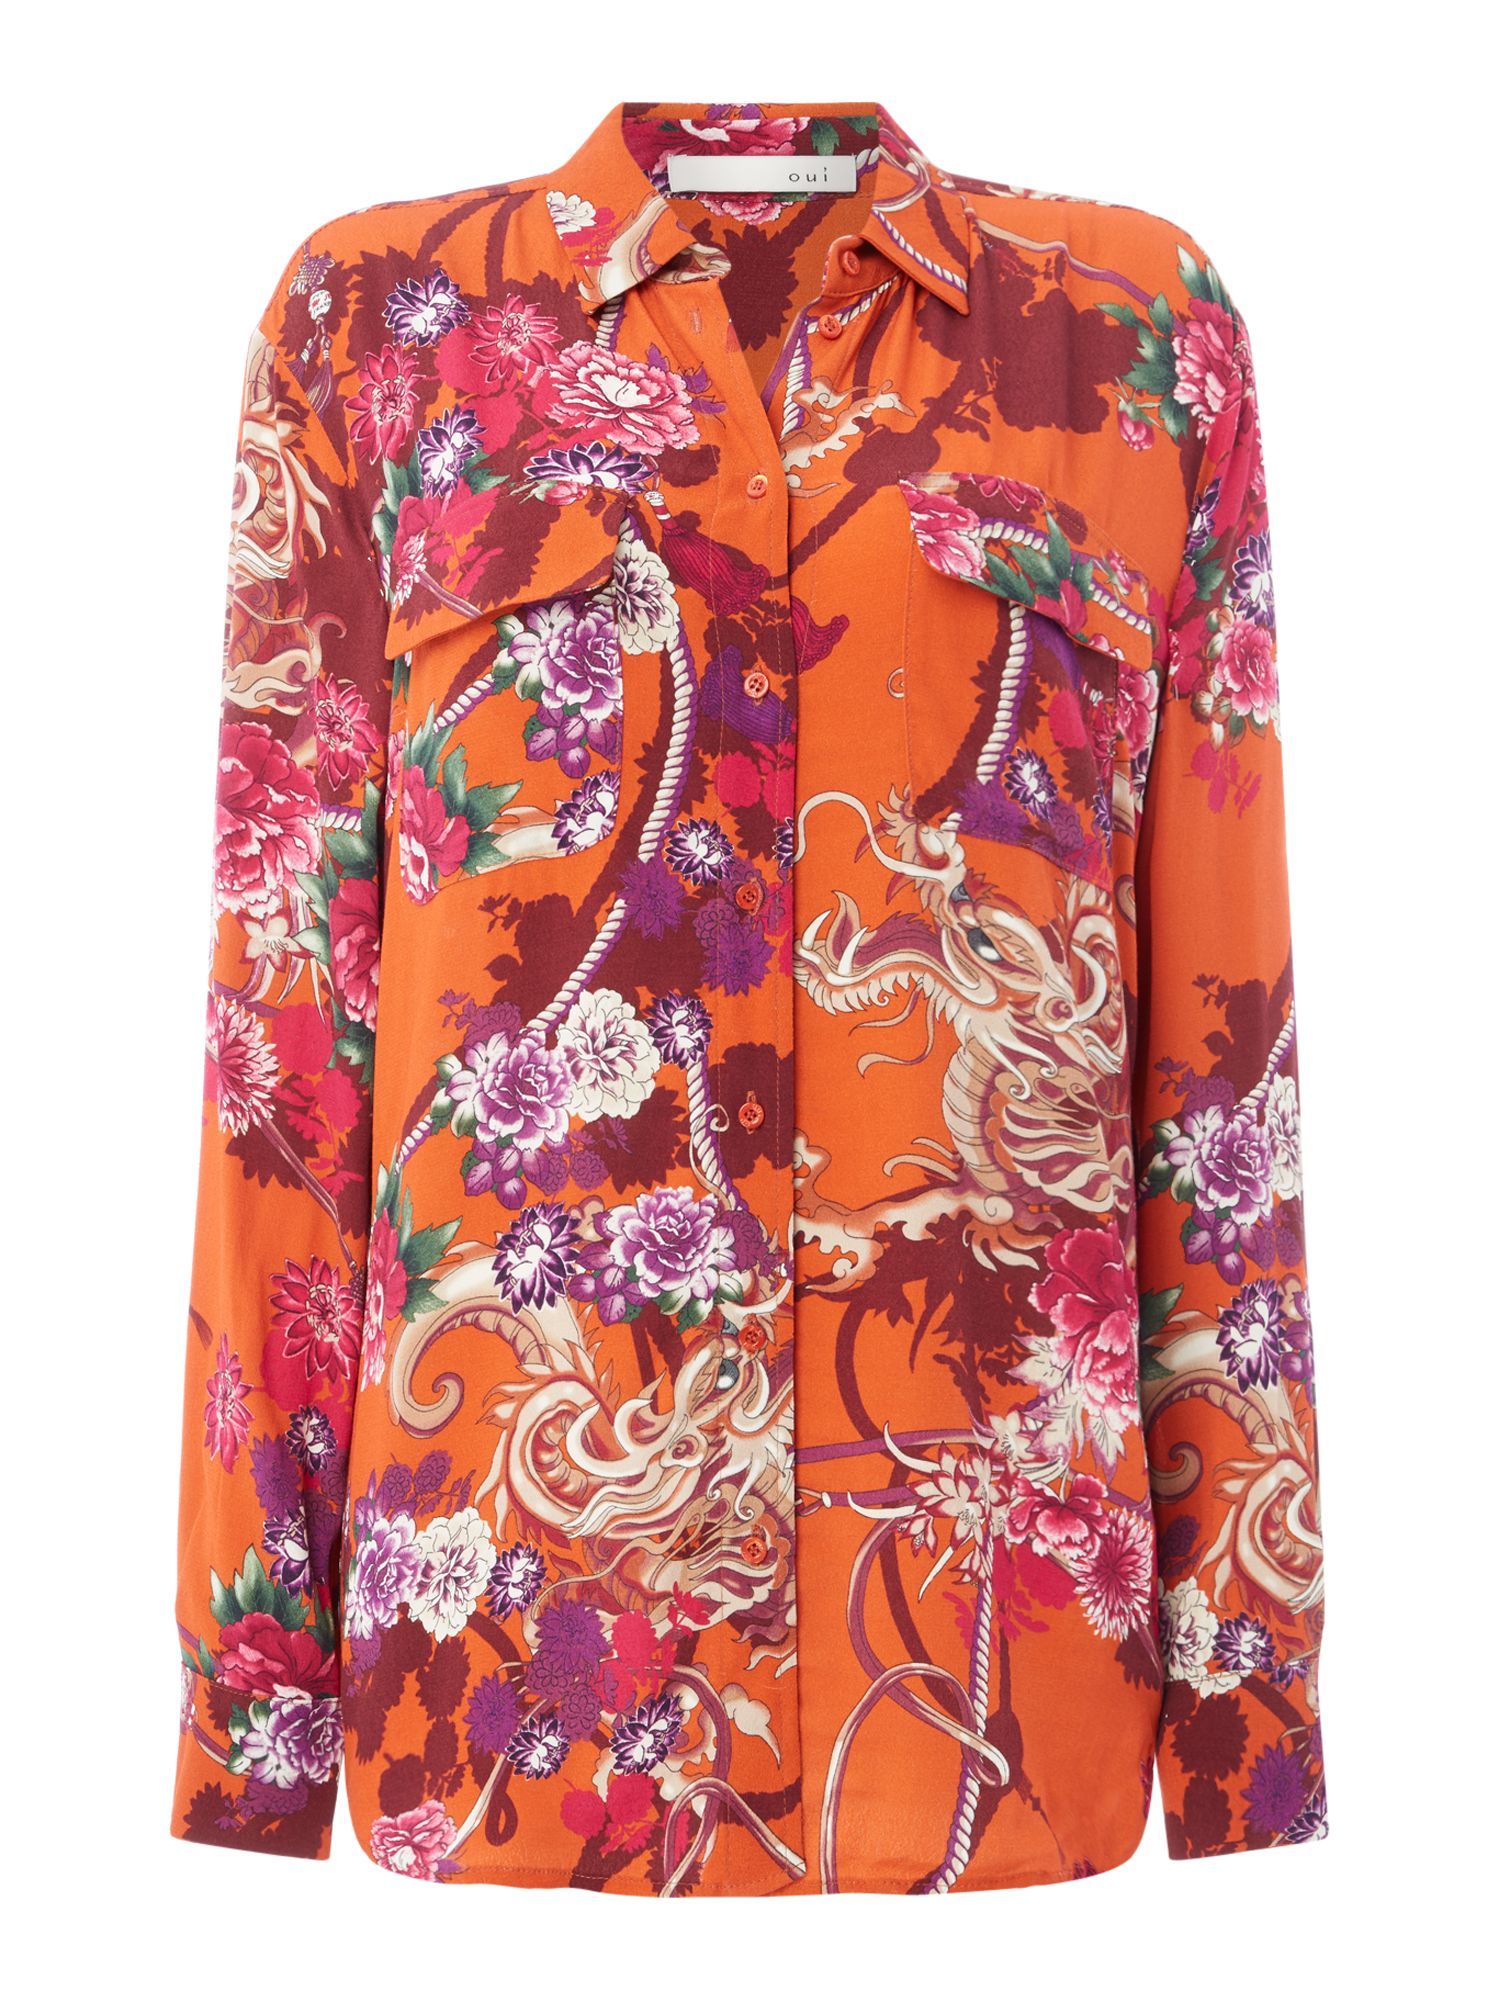 Oui Floral shirt with pockets, Multi-Coloured